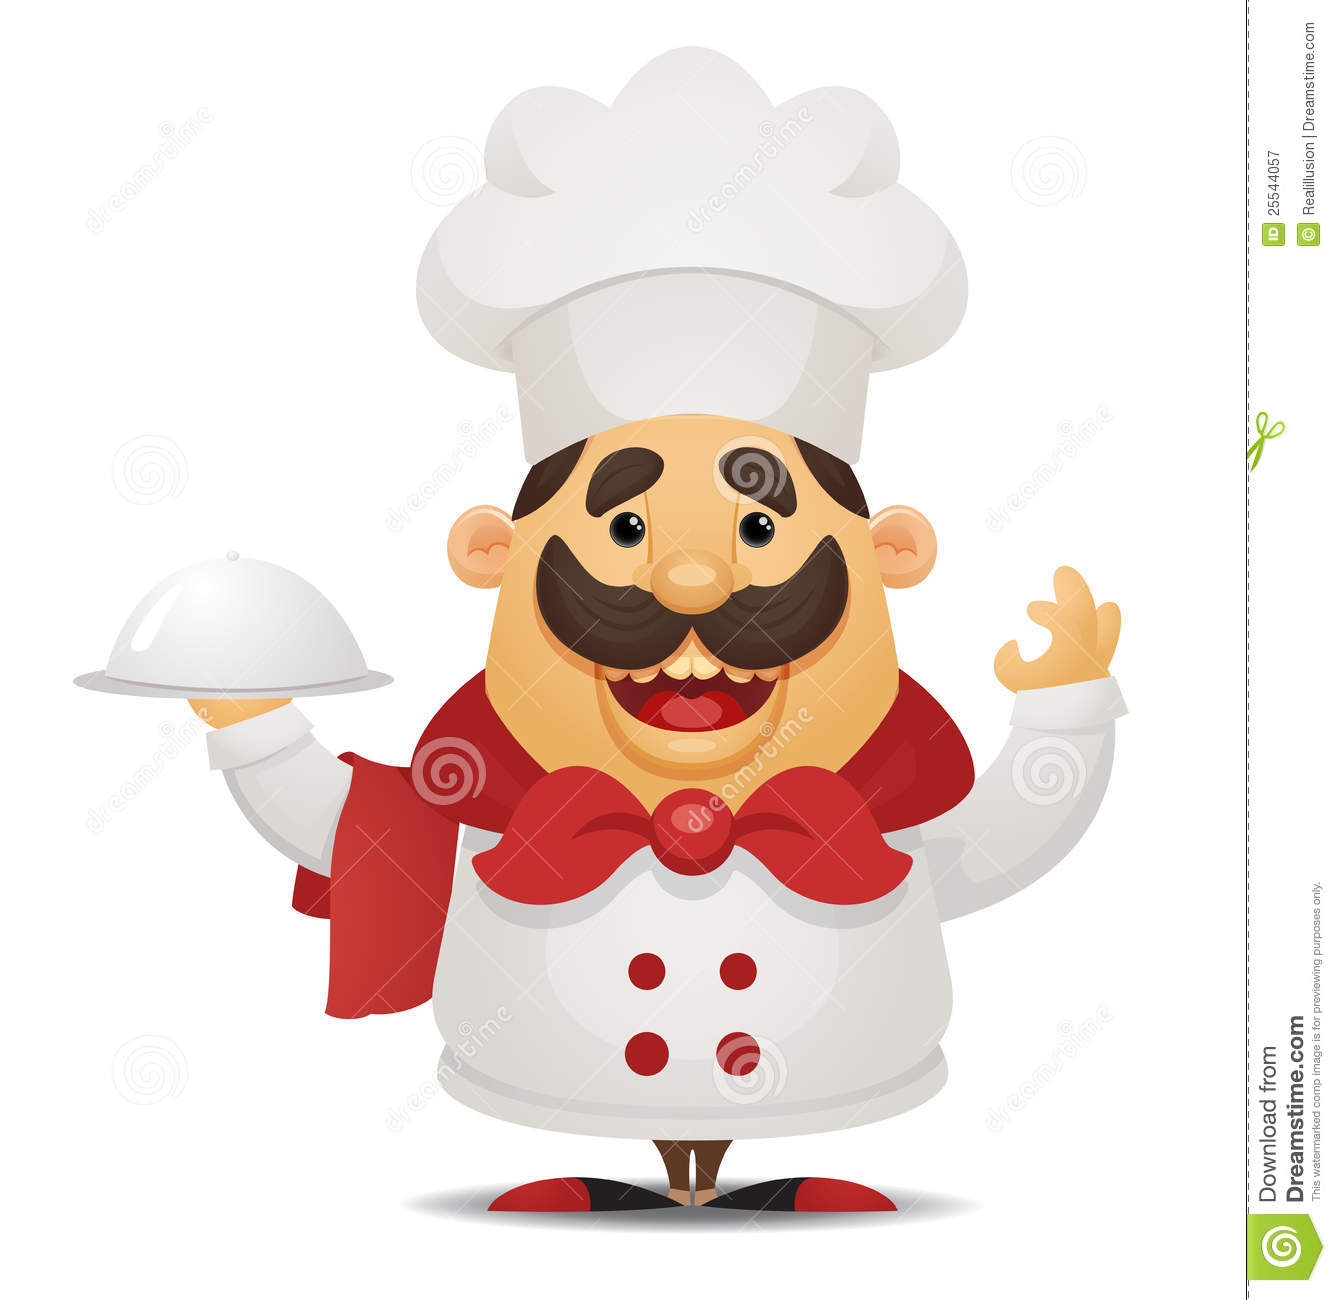 Cartoon chef royalty free stock photography image 25544057